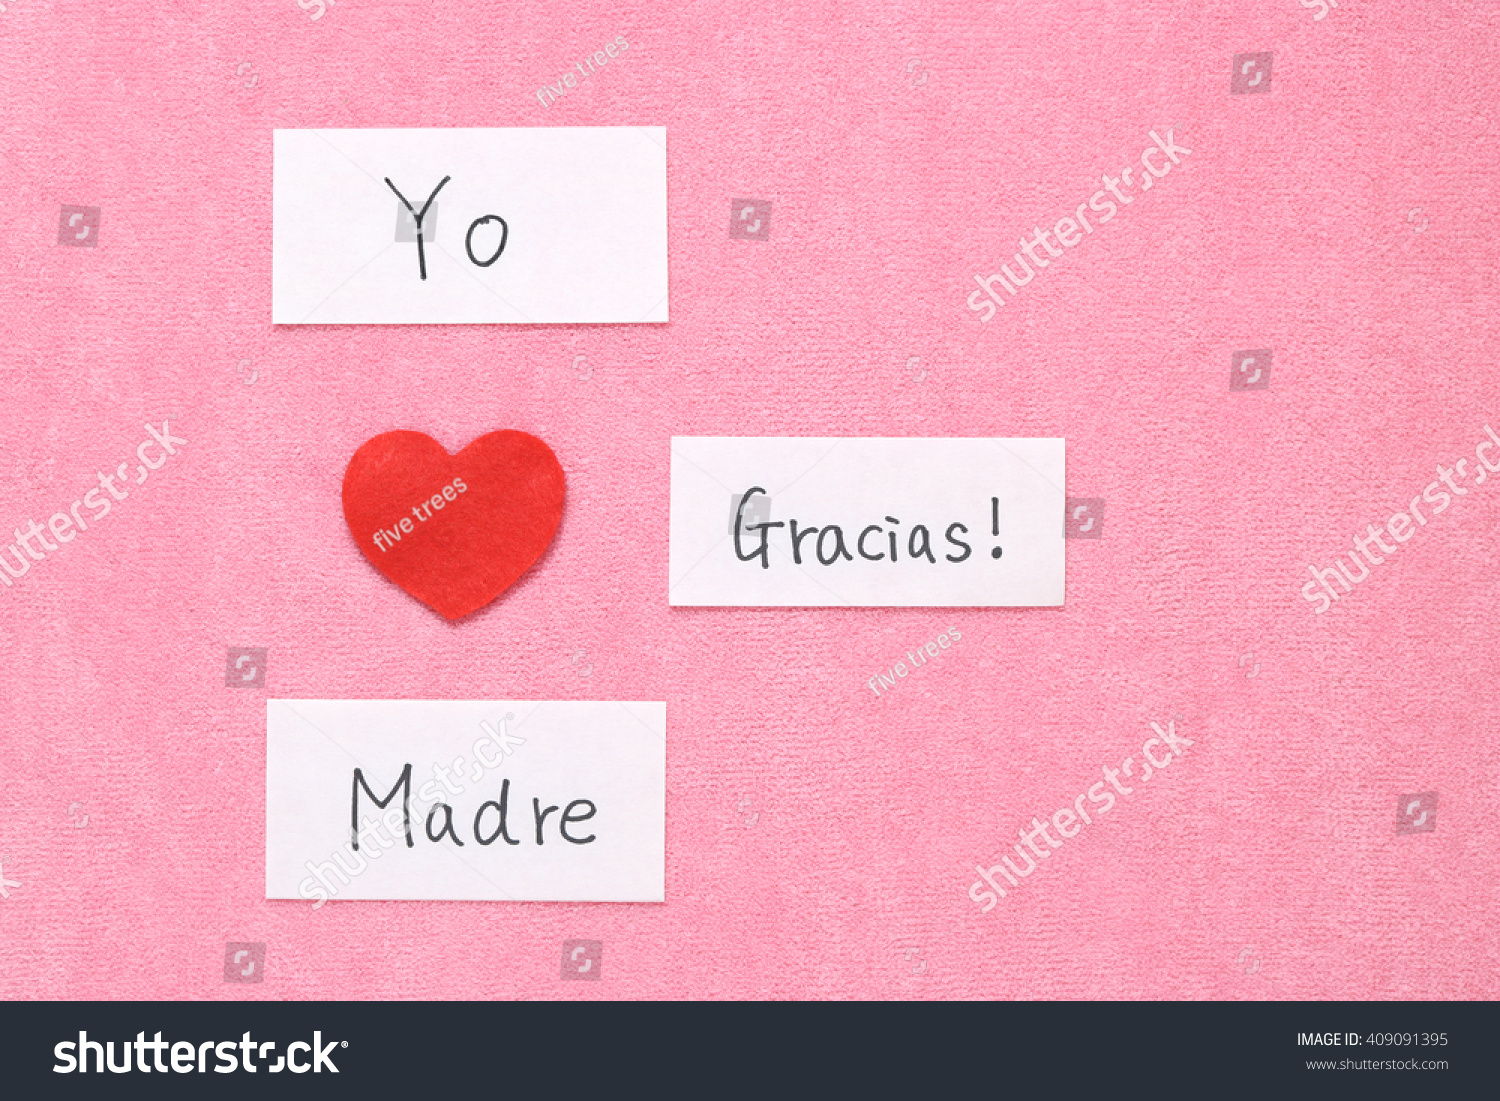 Royalty Free I Love Mom Concept In Spanish Red 409091395 Stock